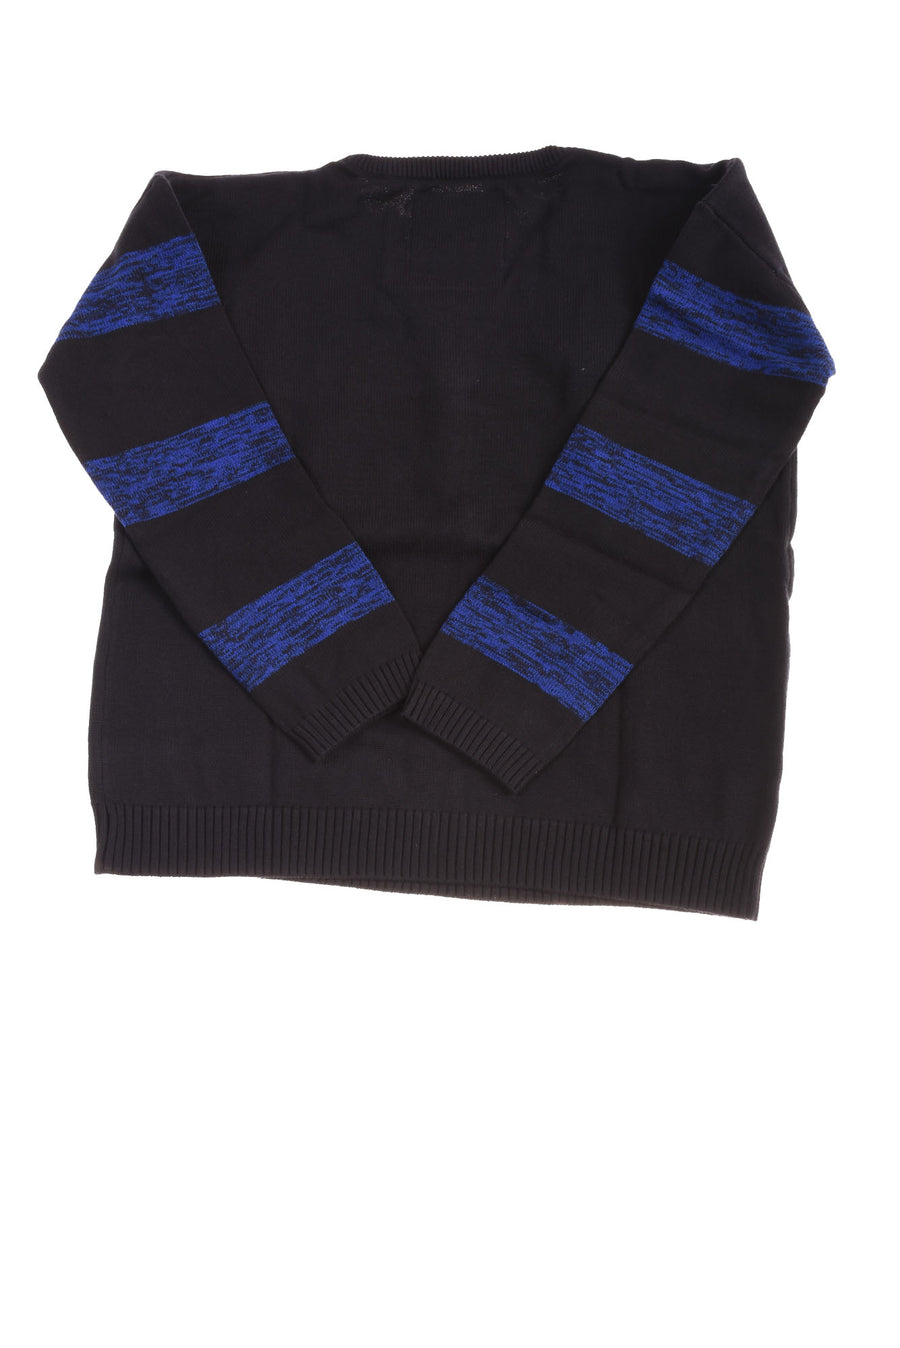 USED We Love Fine Men's Sweater Large Black & Blue